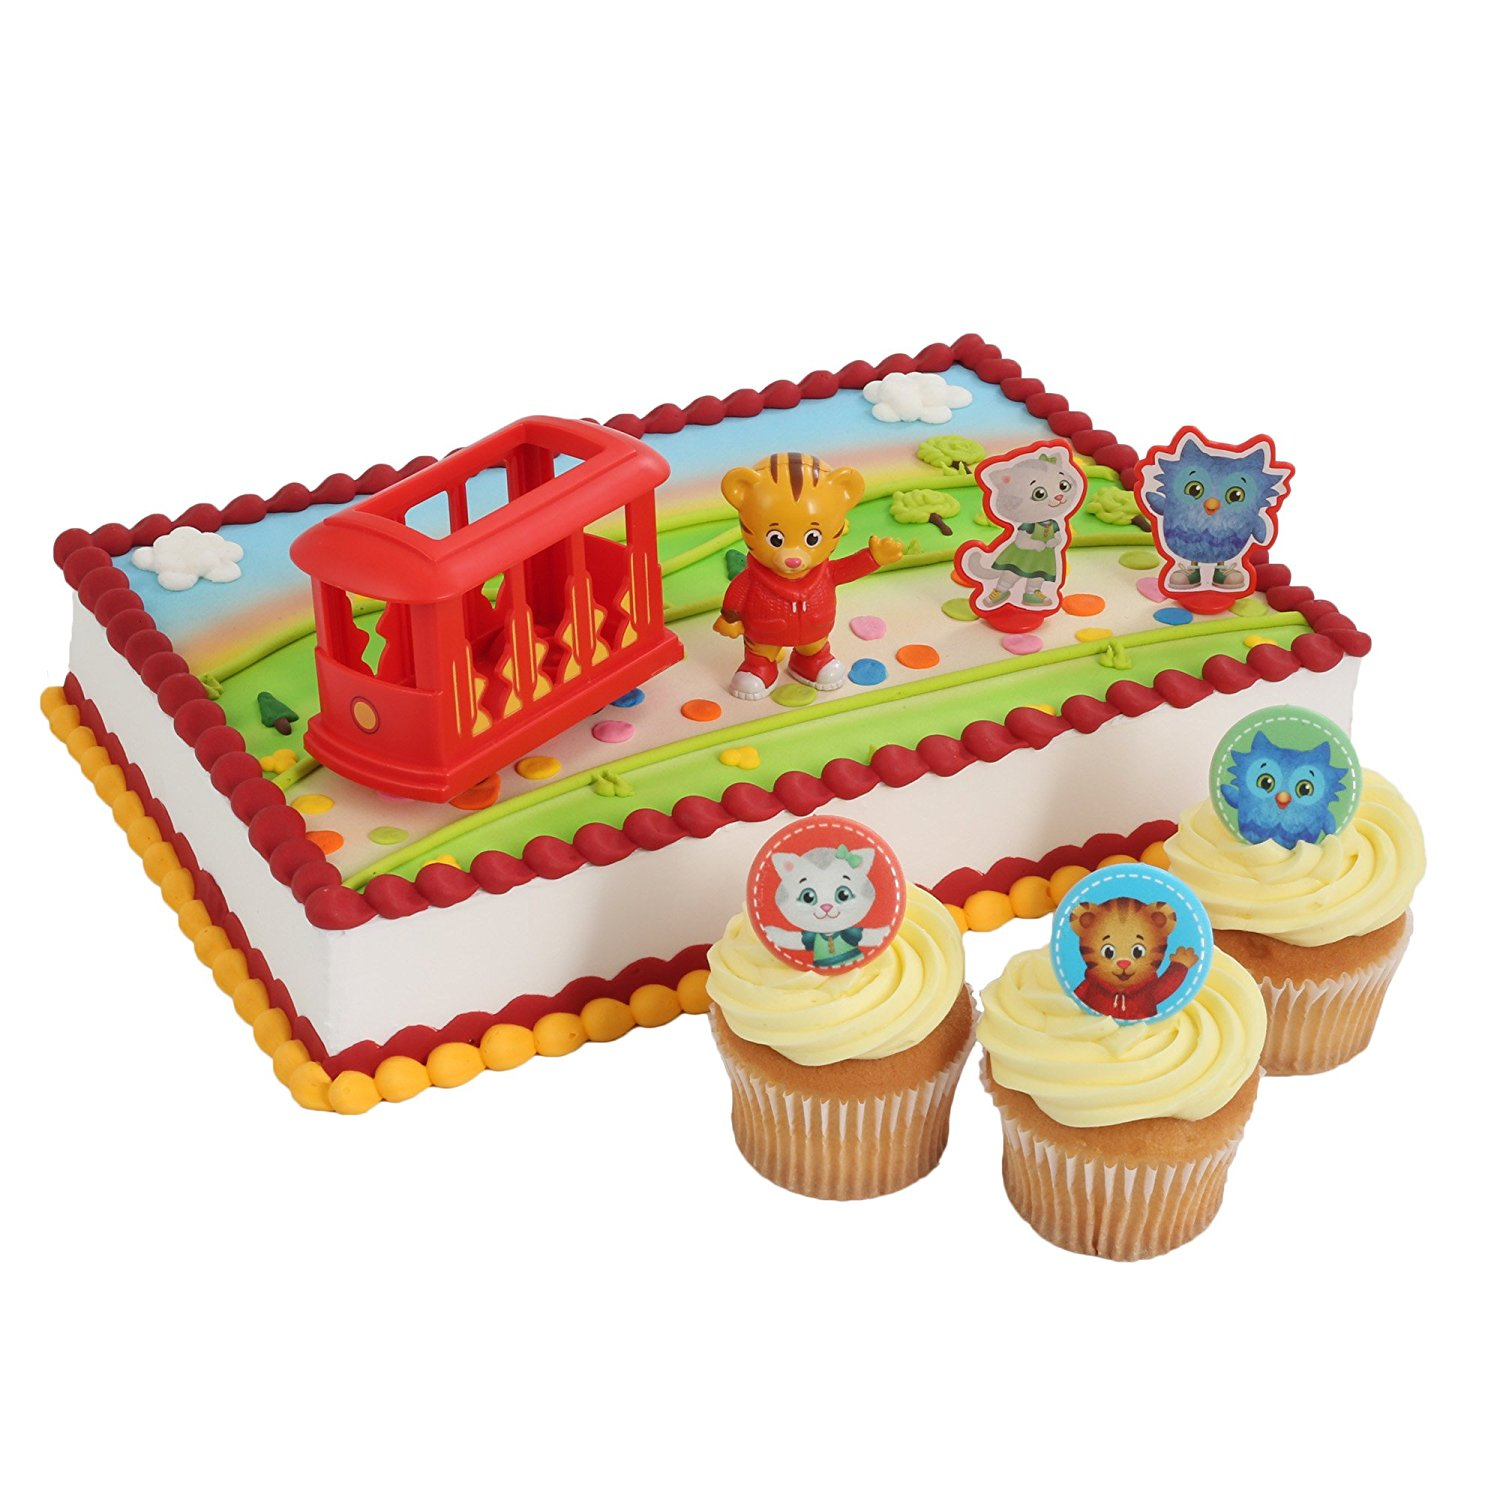 Daniel Tiger Birthday Cake Download Daniel Tiger Birthday Cake Abc Birthday Cakes